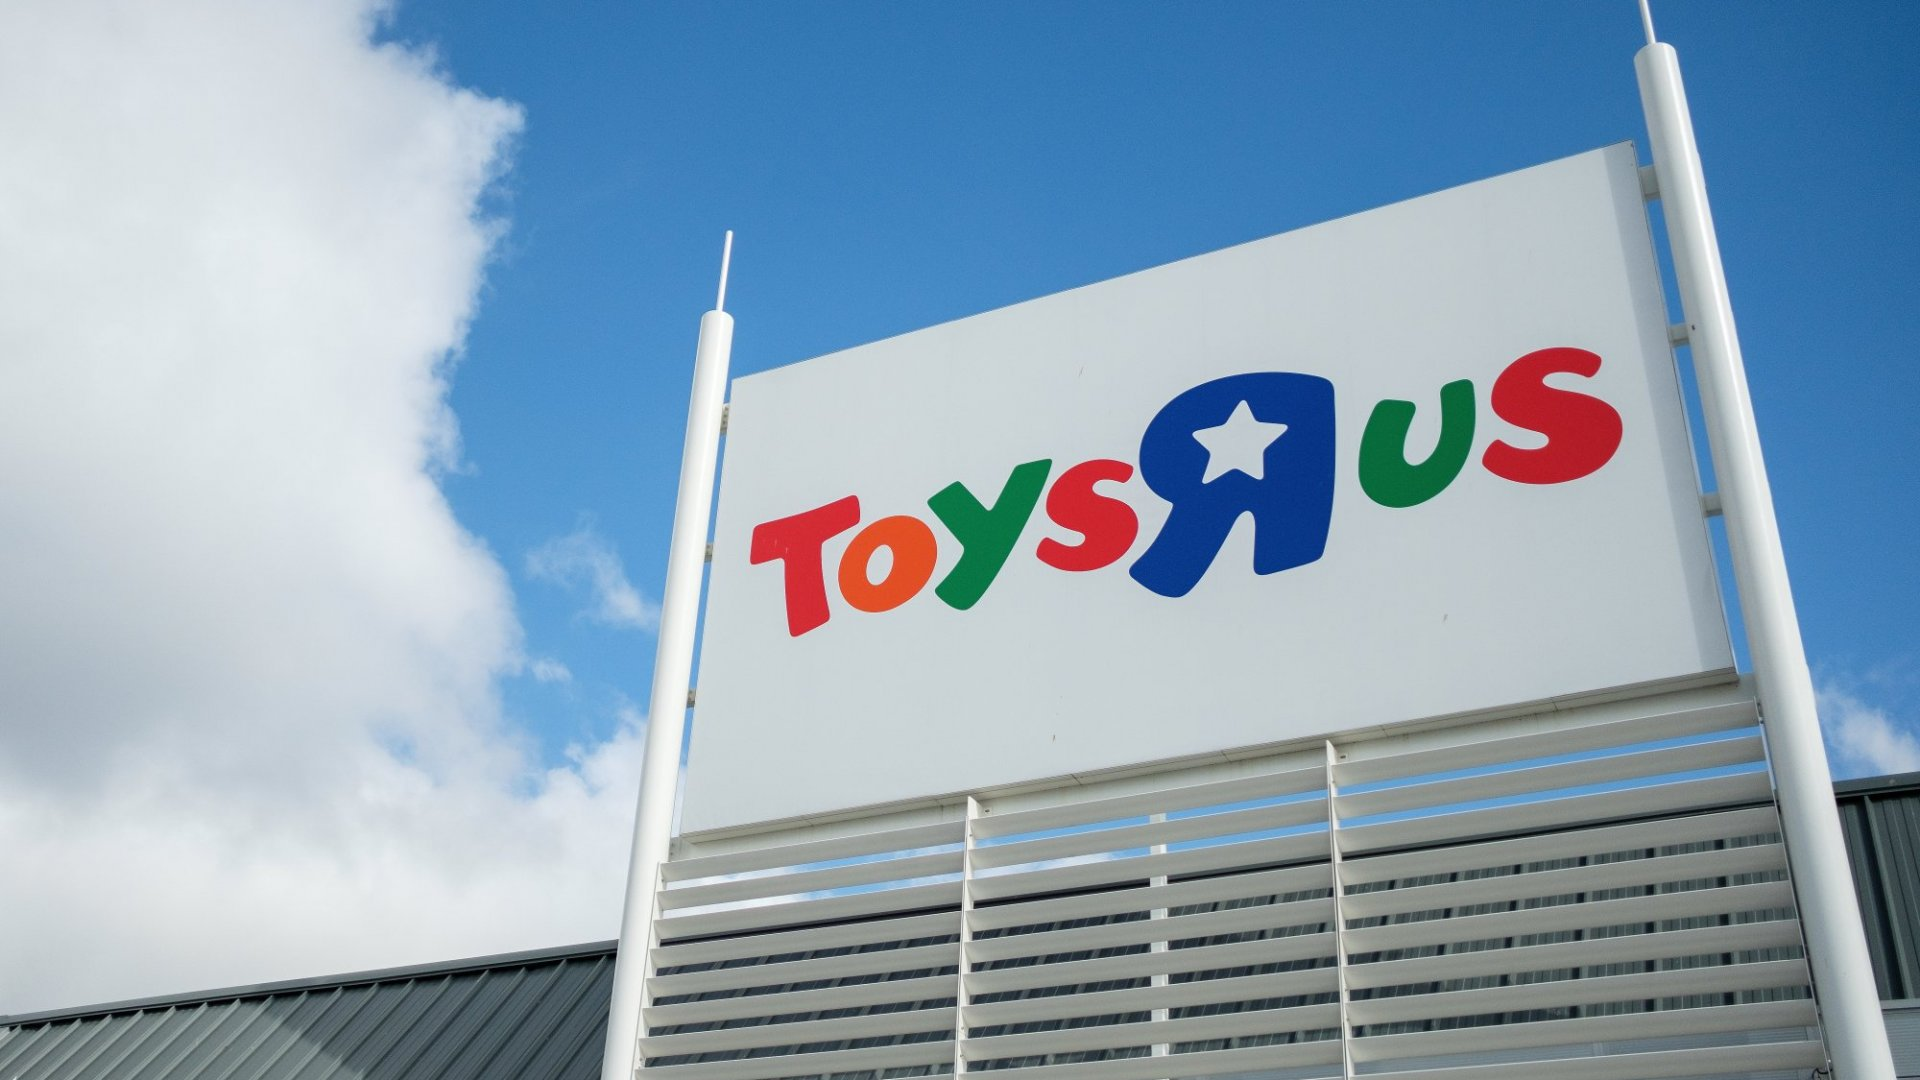 Toys R Us Just Literally Came Back From the Dead. (Here's the Ridiculously Ironic Detail You Couldn't Make Up If You Tried)